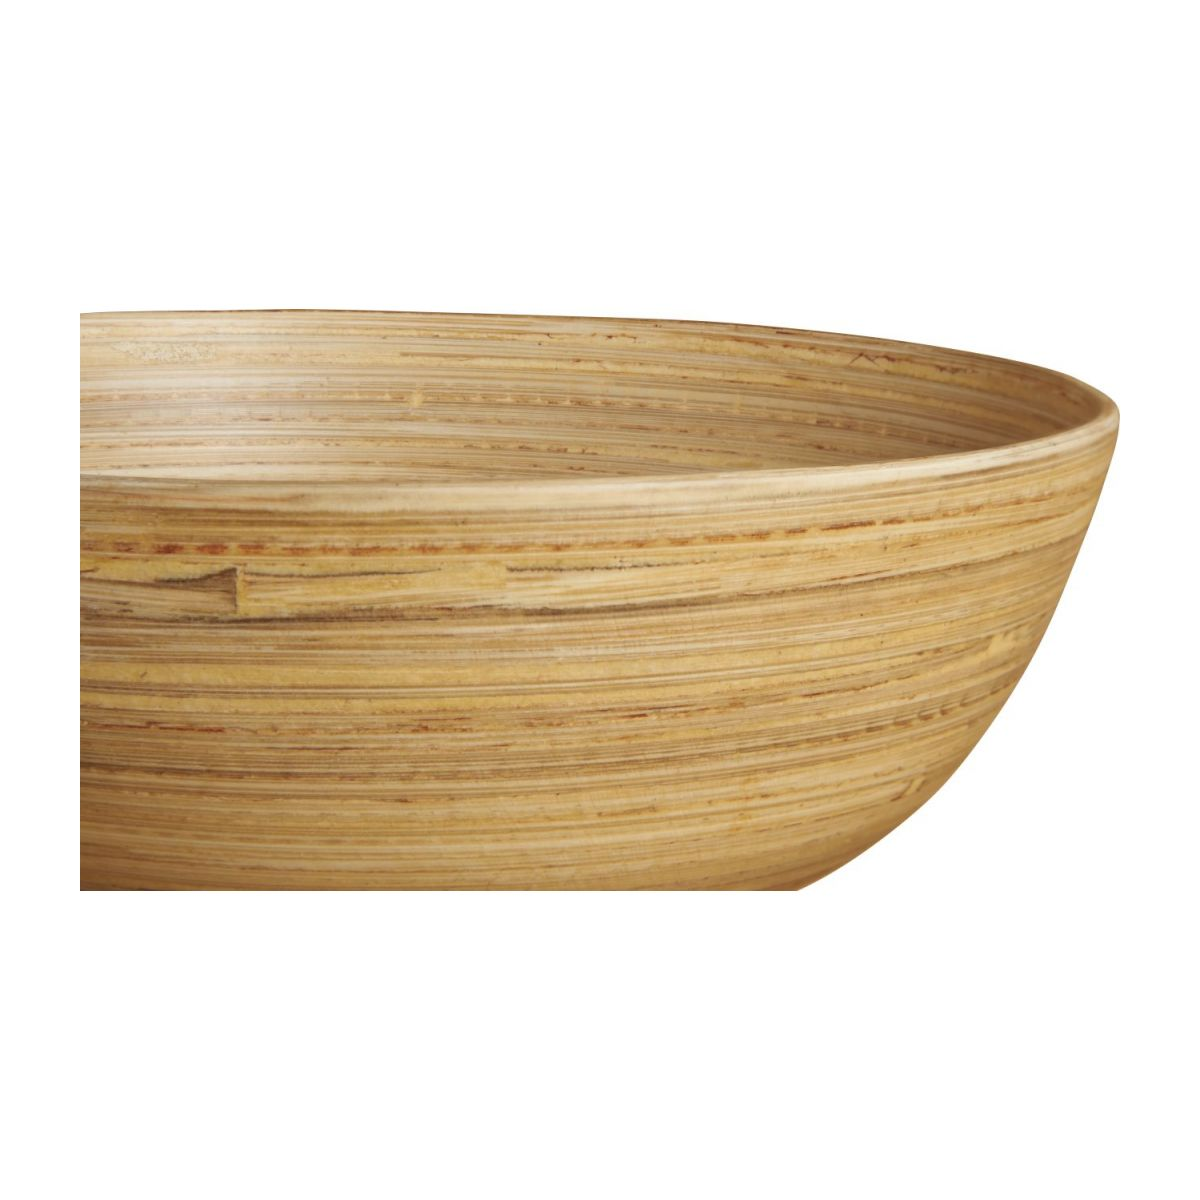 Grand bol 20 cm en bois naturel n°3